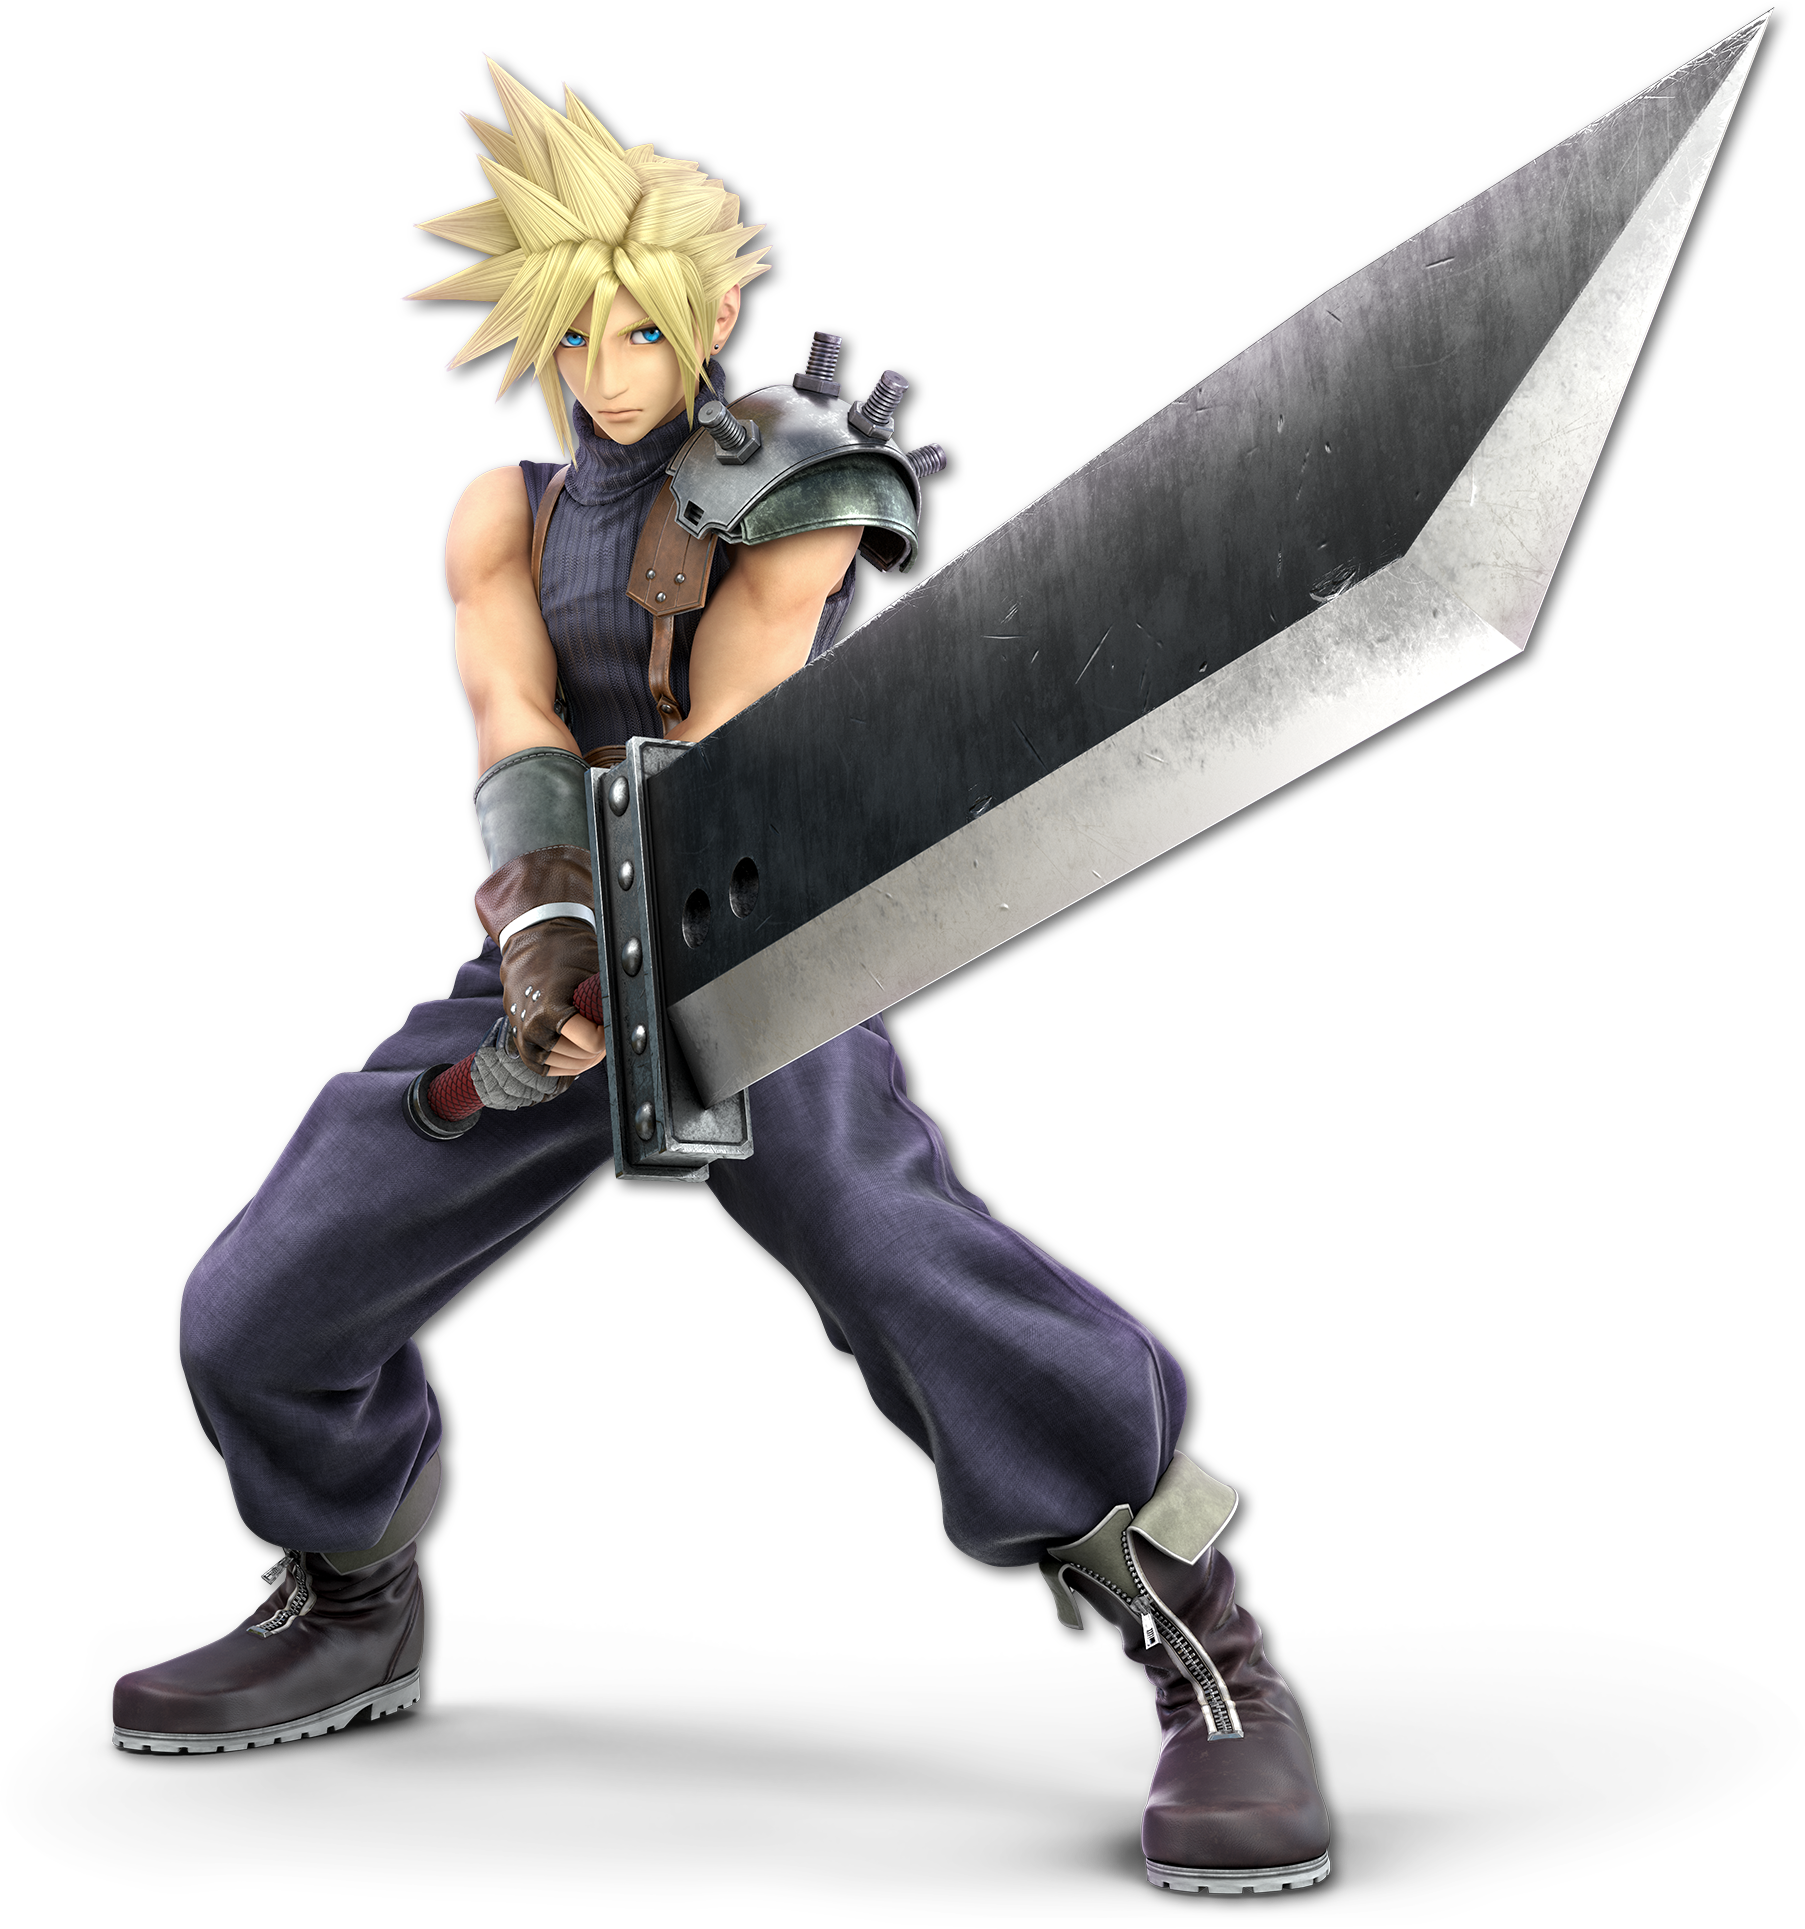 cloud strife wikia death battle en espa ol fandom powered by wikia. Black Bedroom Furniture Sets. Home Design Ideas